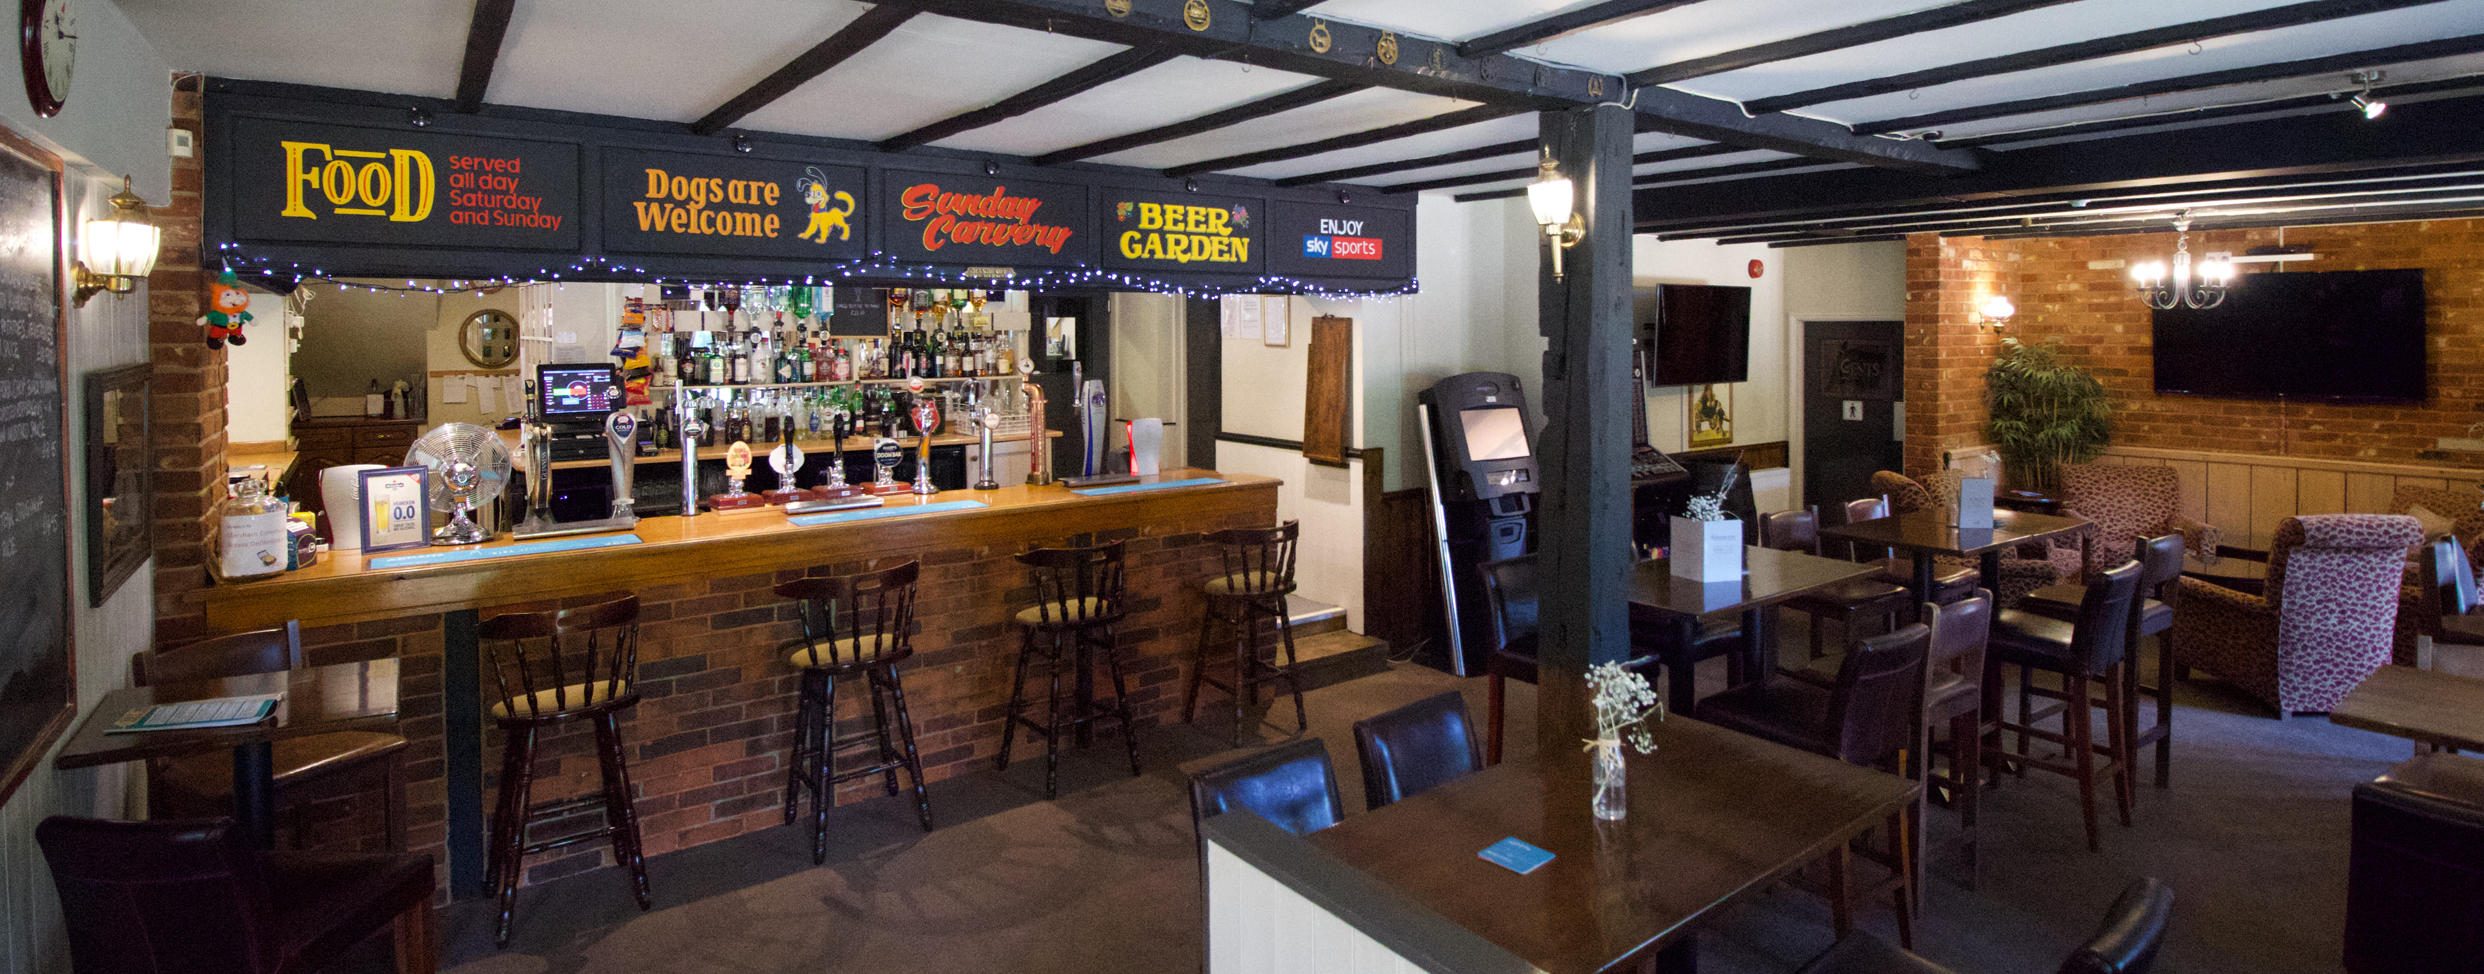 The Plough Inn Bar, Restaurant & Accommodation // Interior shot of the Plough Inn Bar // Home slider